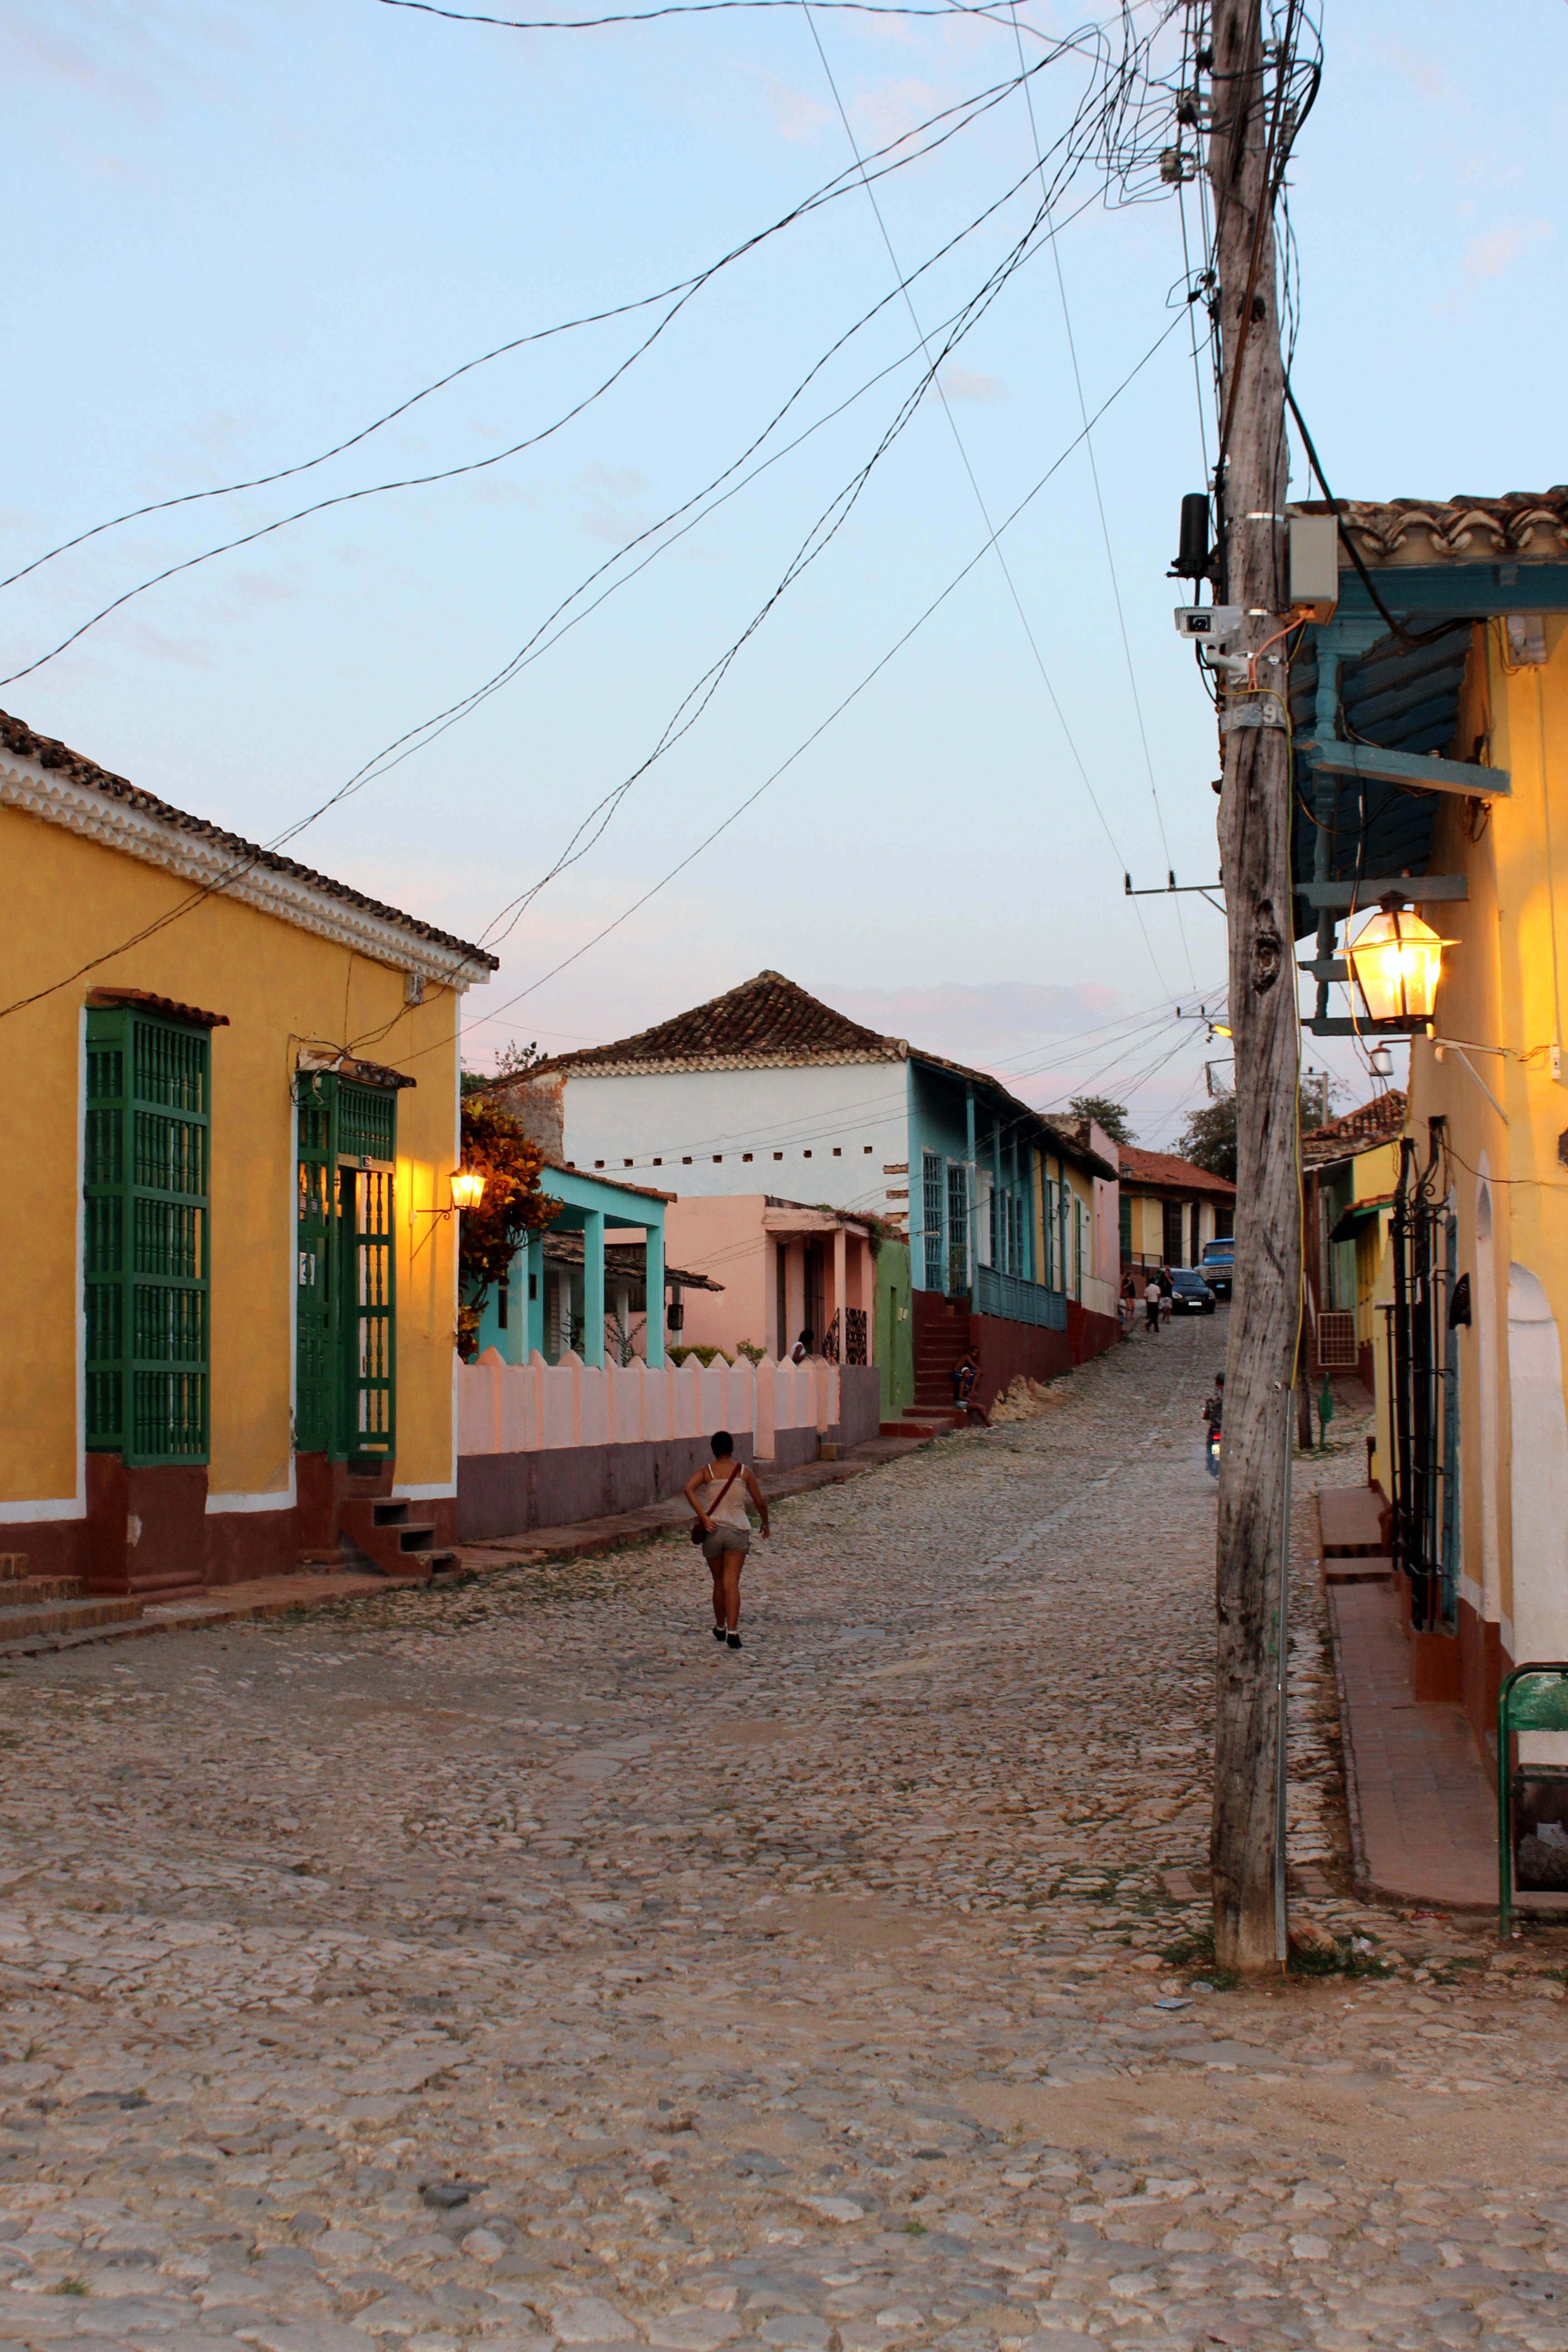 In Cuba's five hundred year old town of Trinidad, a woman walks home at dusk.